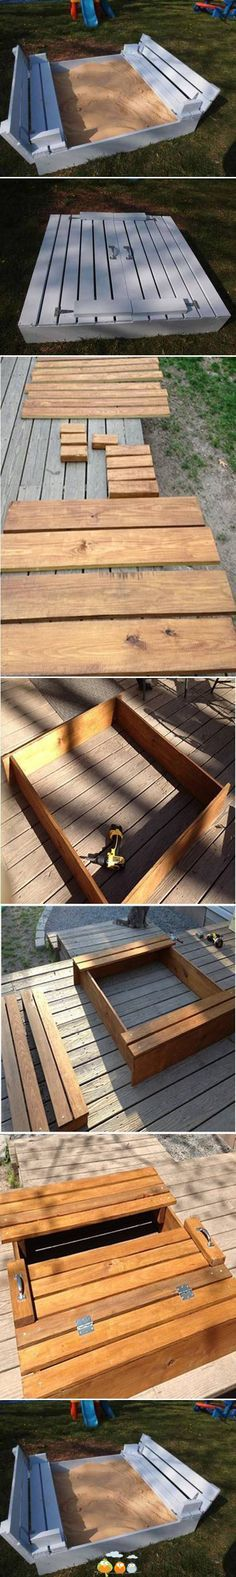 wood pallet sandbox, with bench seats that unfold to cover the sandbox...very cleaver